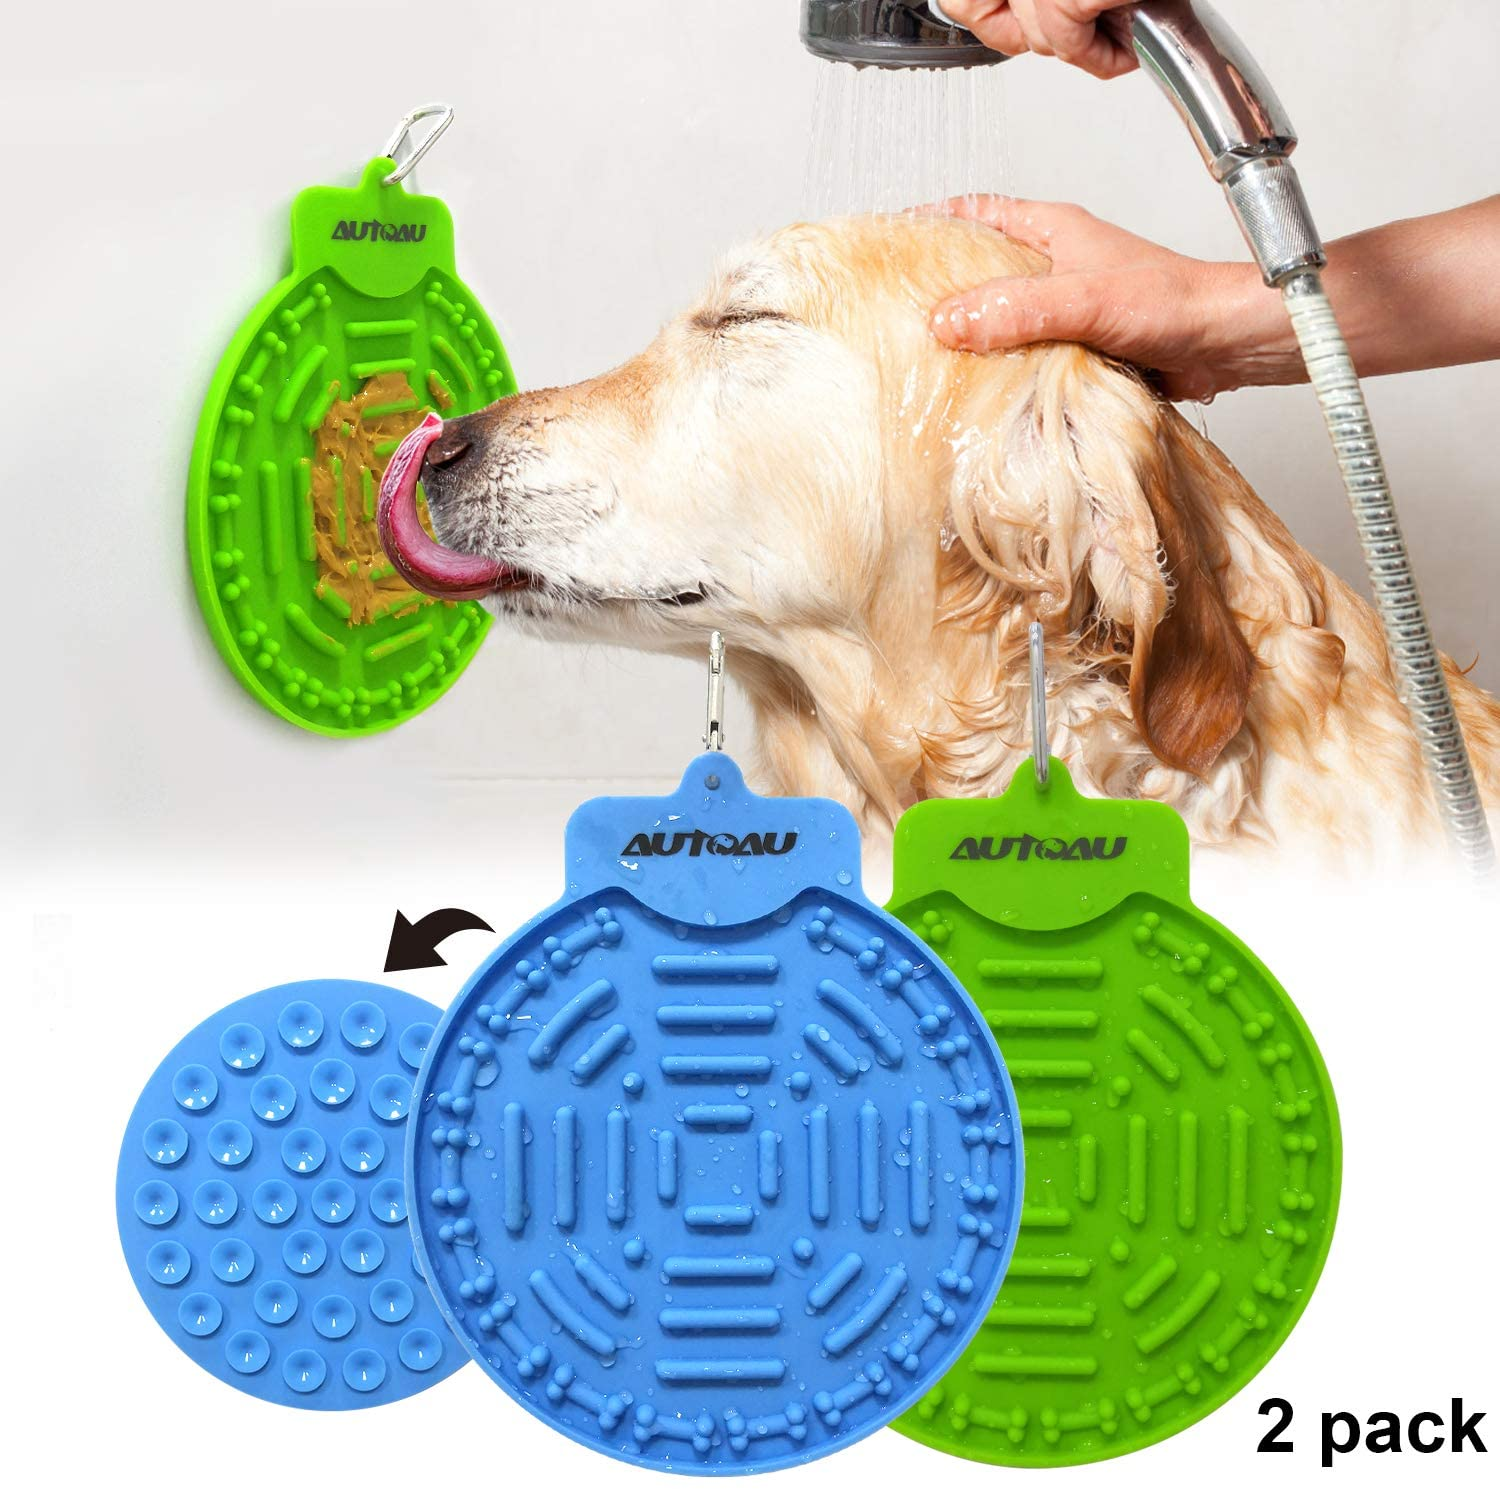 Autoau Dog Bath Lick Mat Powerful Suctions to Wall Dog Bathing Distraction Device Dog Slow Feeder Tray for Easy and Fun Shower Pet Bathing Grooming Training Dog Licking Pad